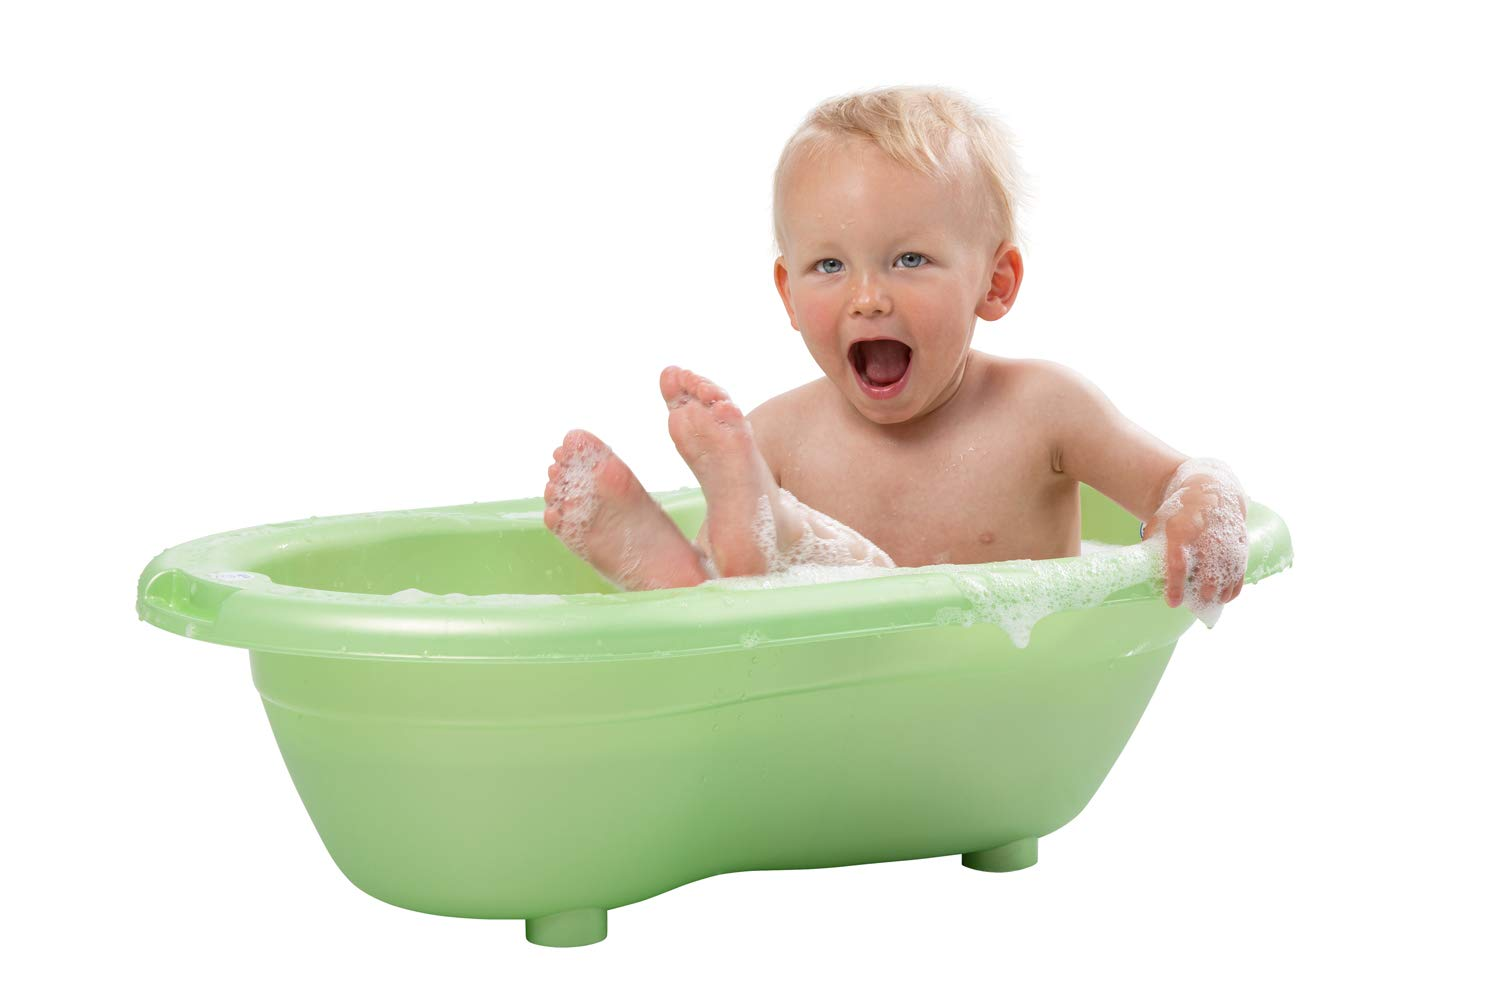 Rotho Babydesign TOP Bath tub, with Anti-Slip Mat and Drain Plug, 0-12 Months, TOP, White, 200010001